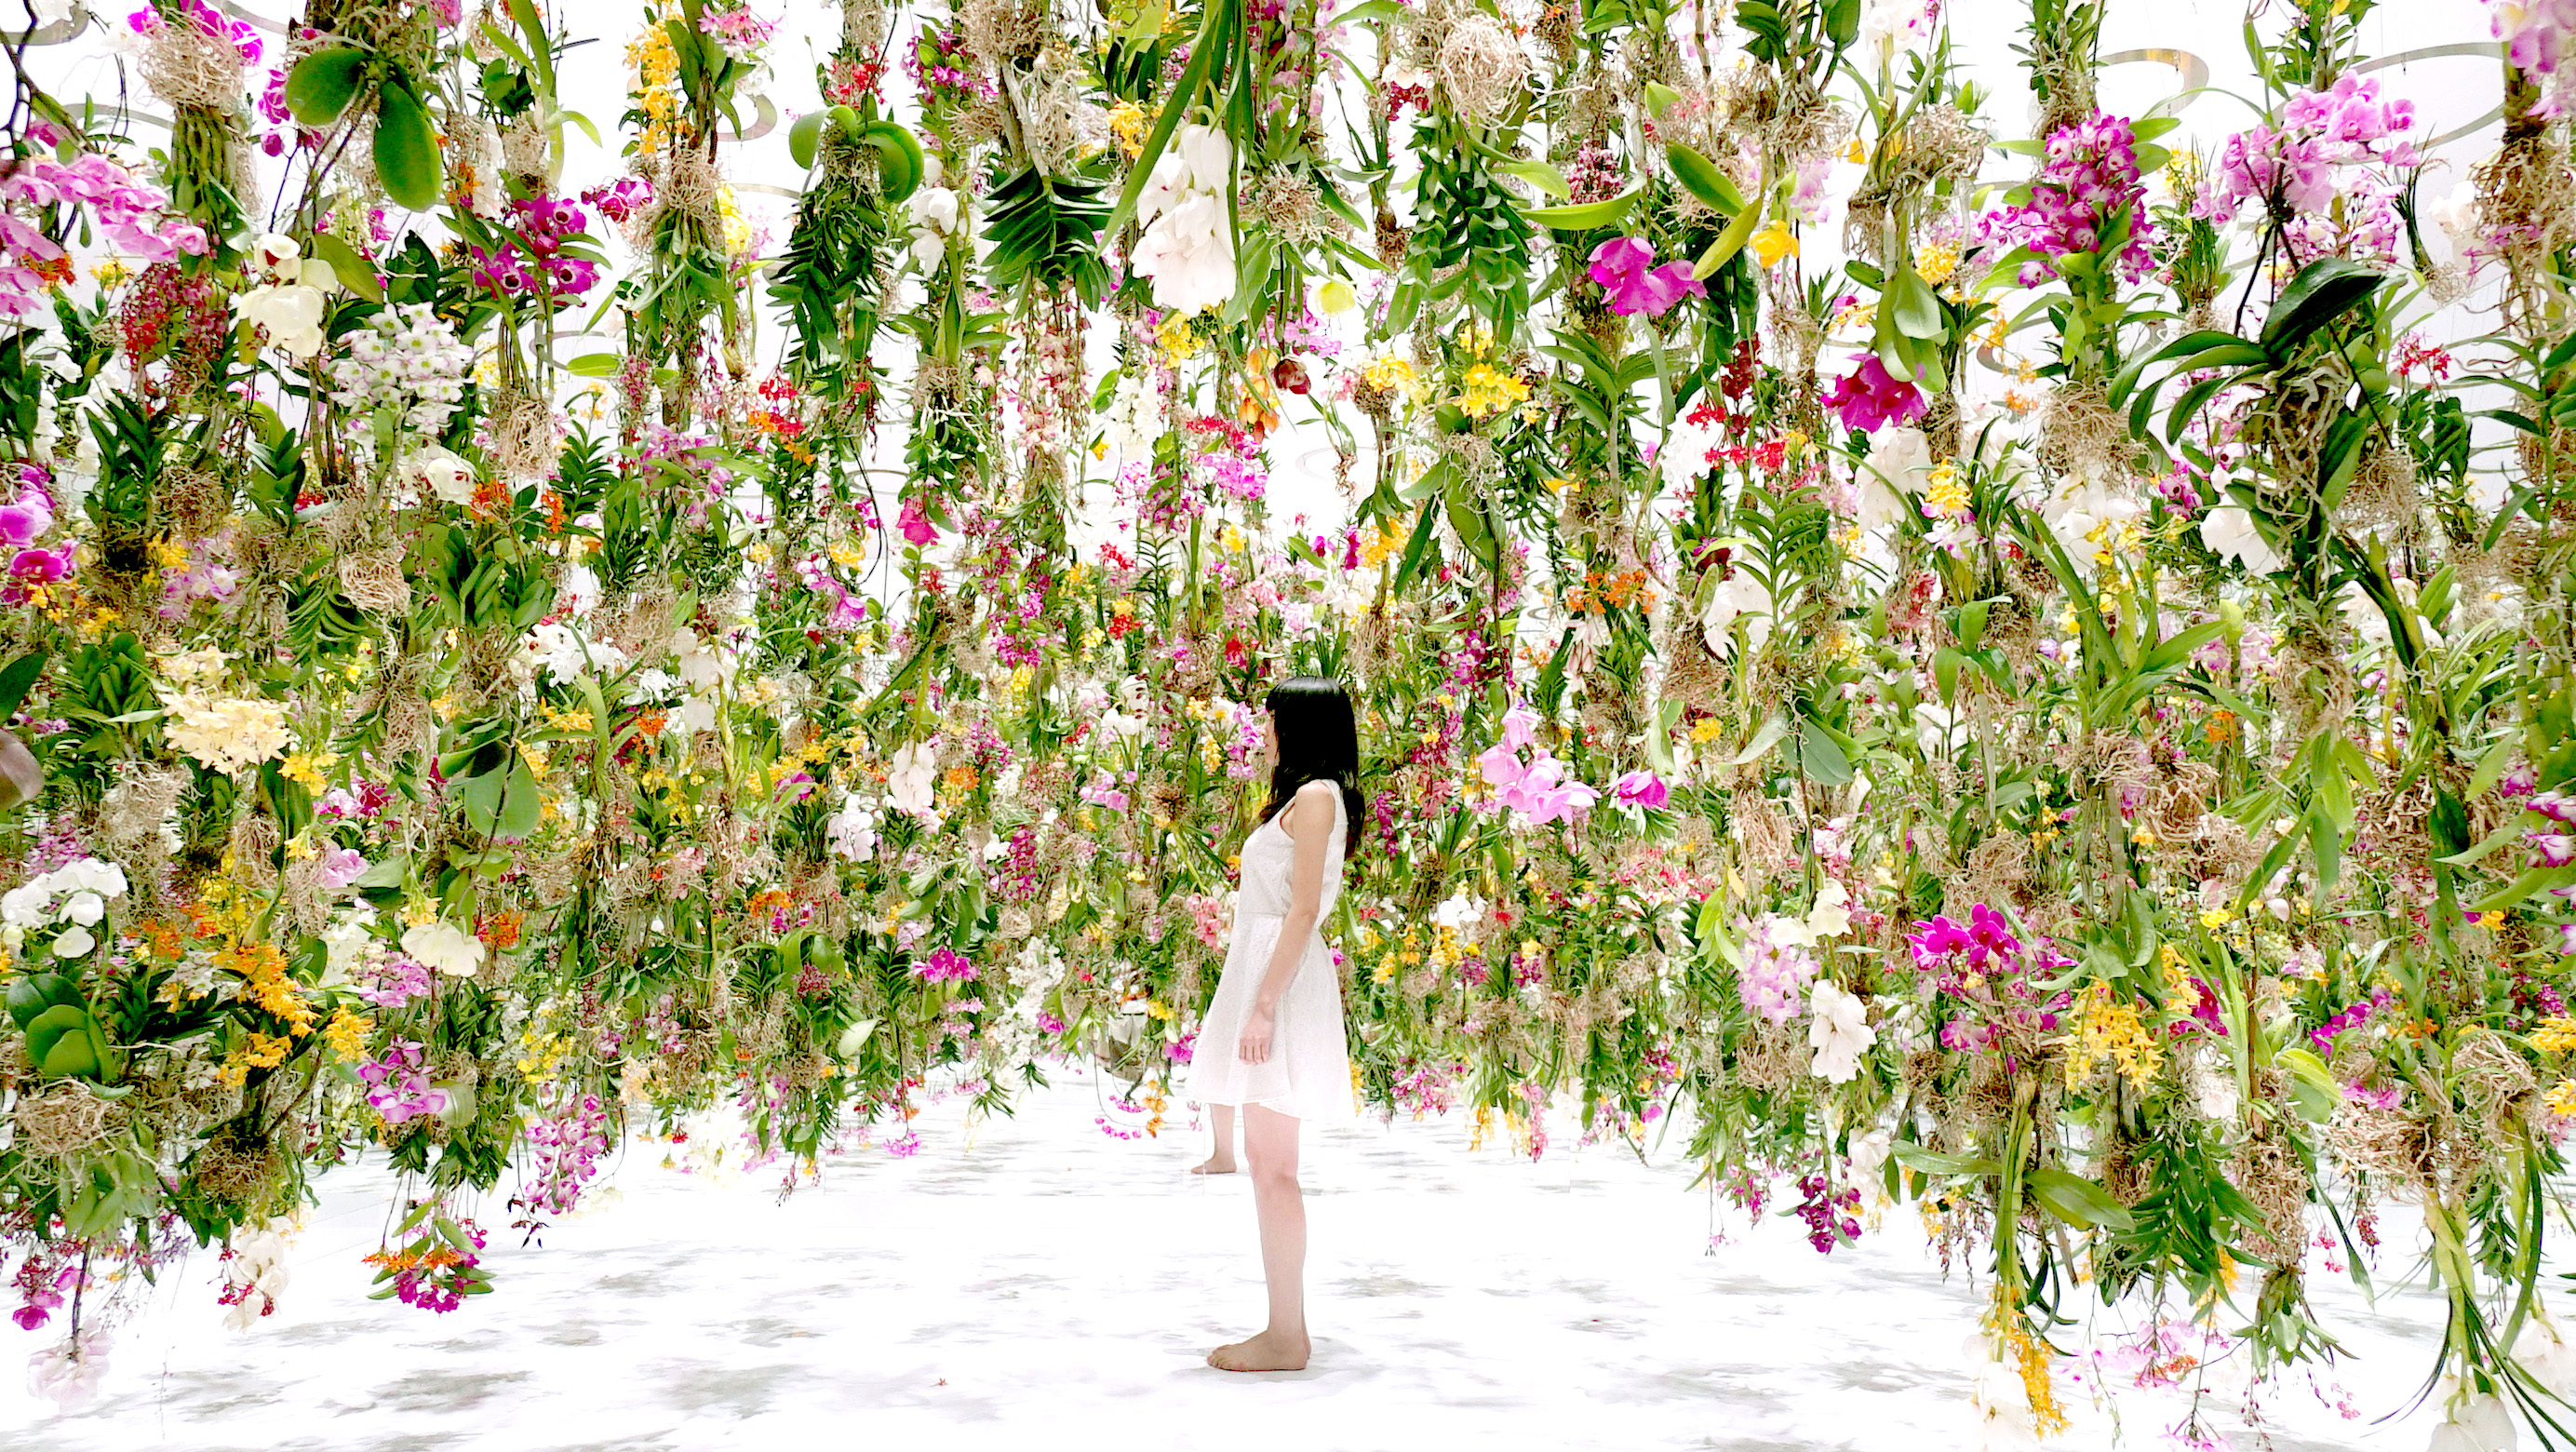 A suspended flower garden that lifts out of the way when a for Jardin floral